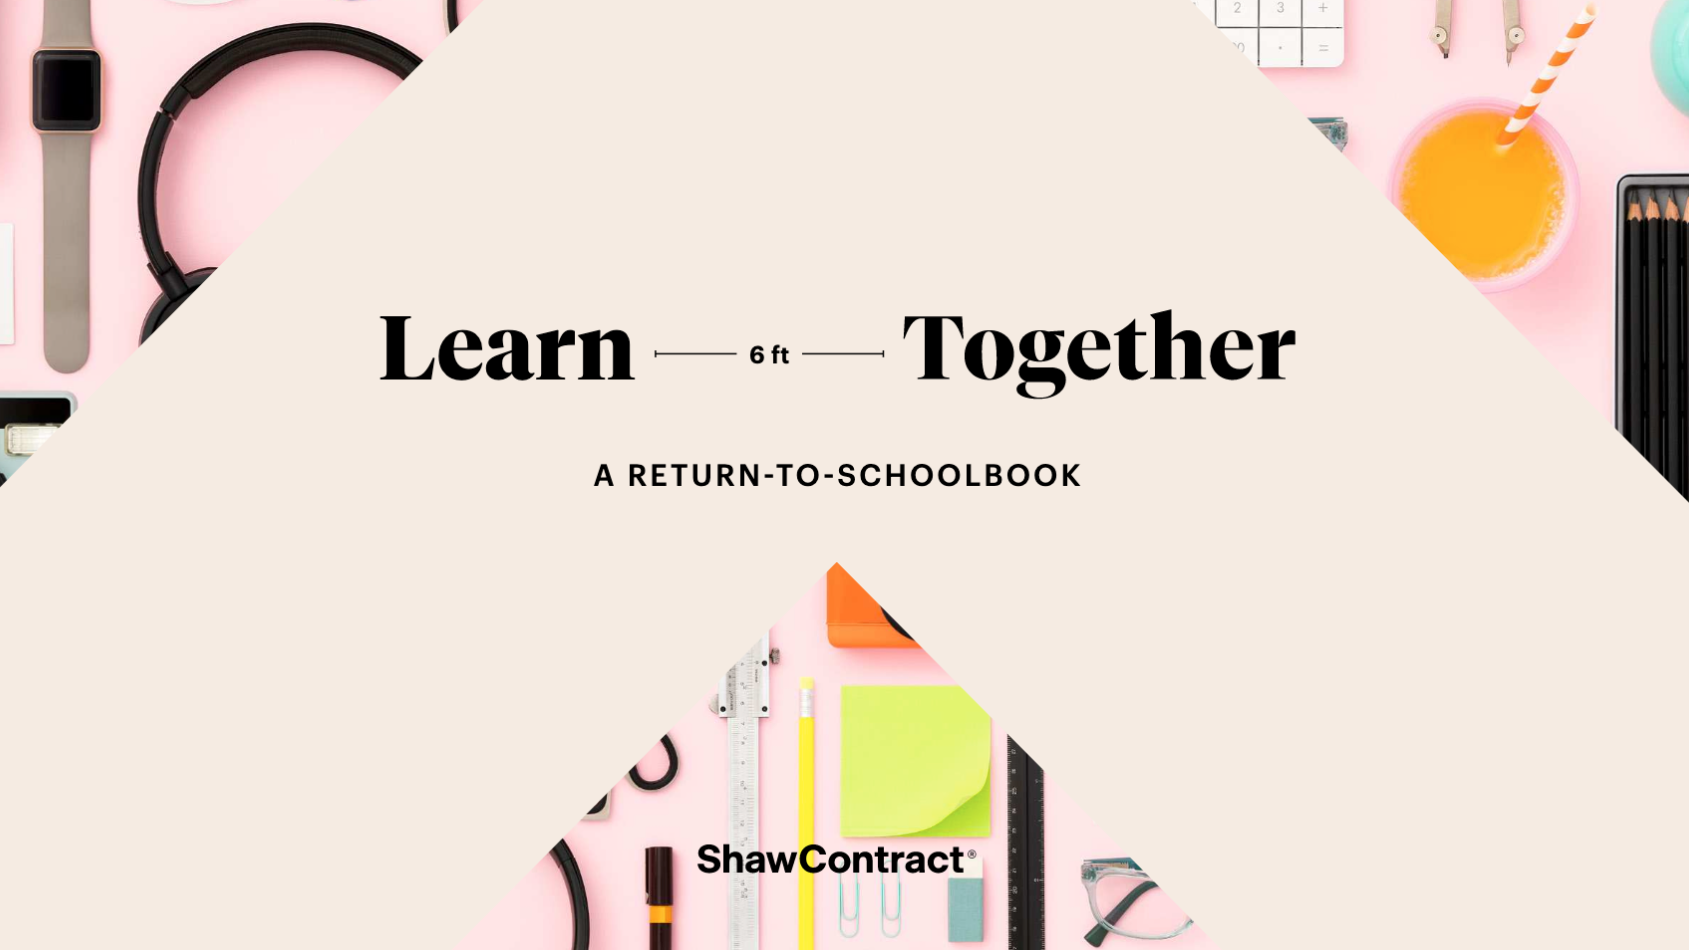 shaw-contract-return-to-school-book